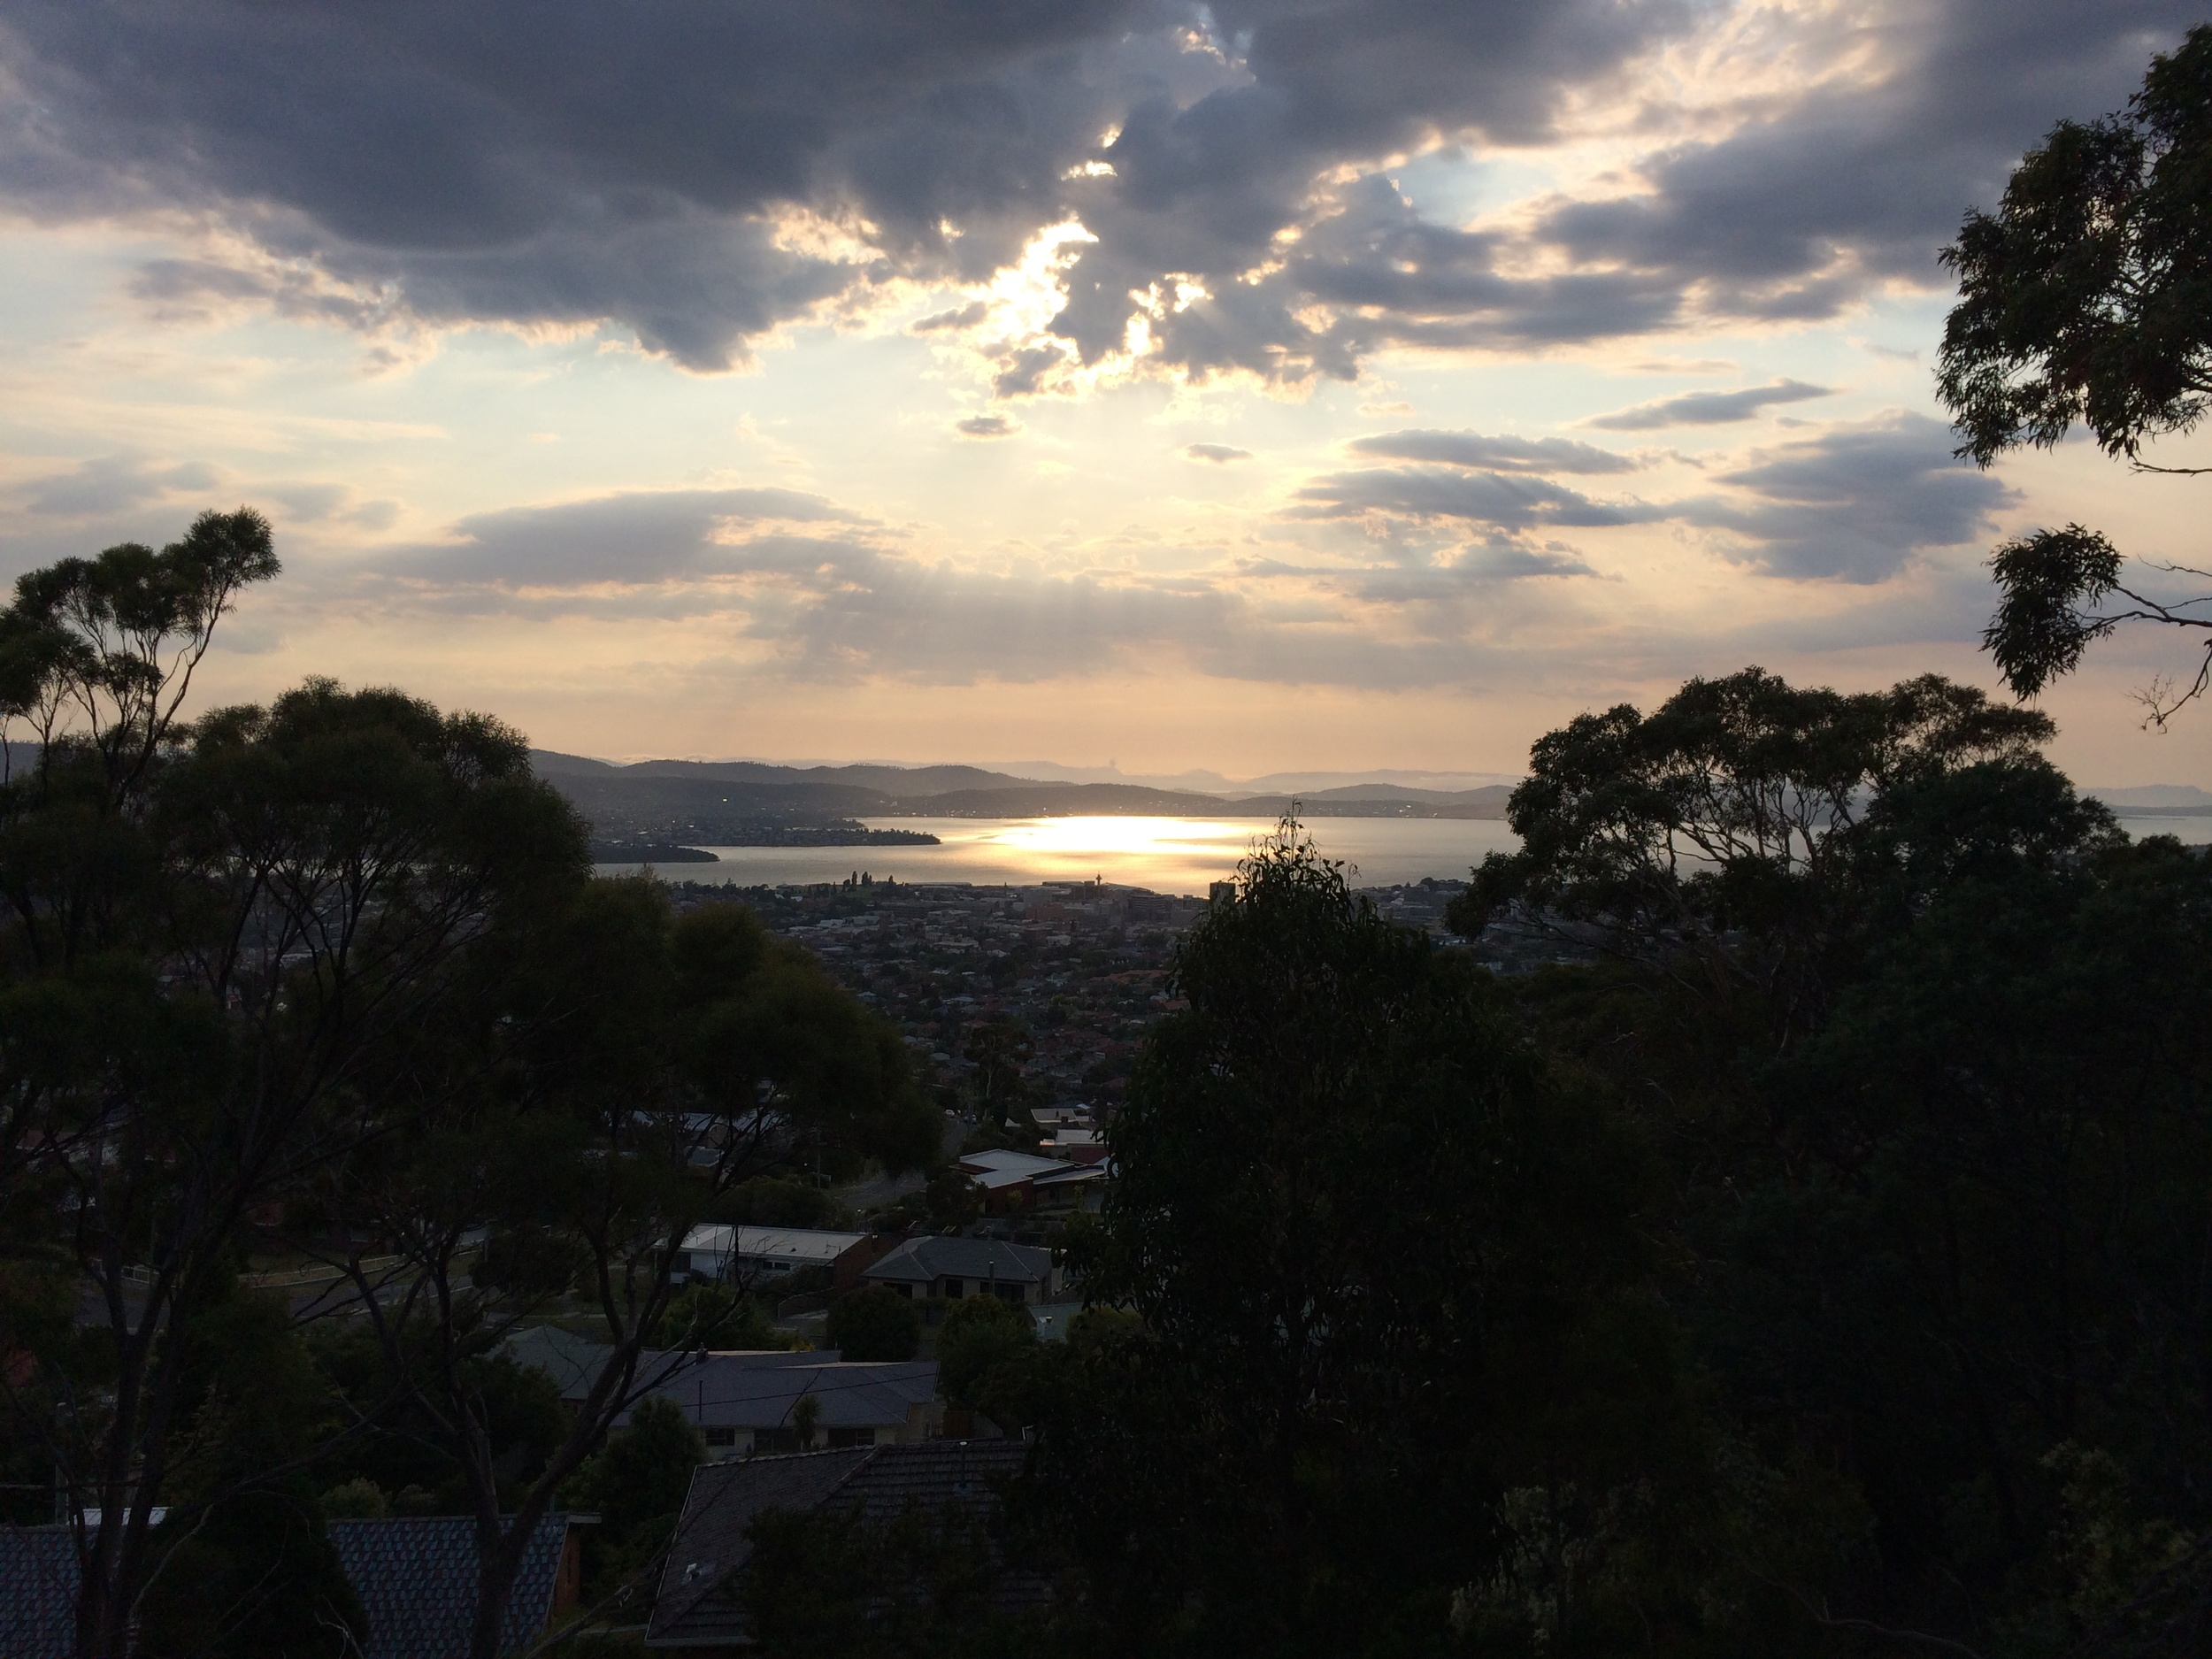 This was my view of Hobart halfway through my early morning walk.